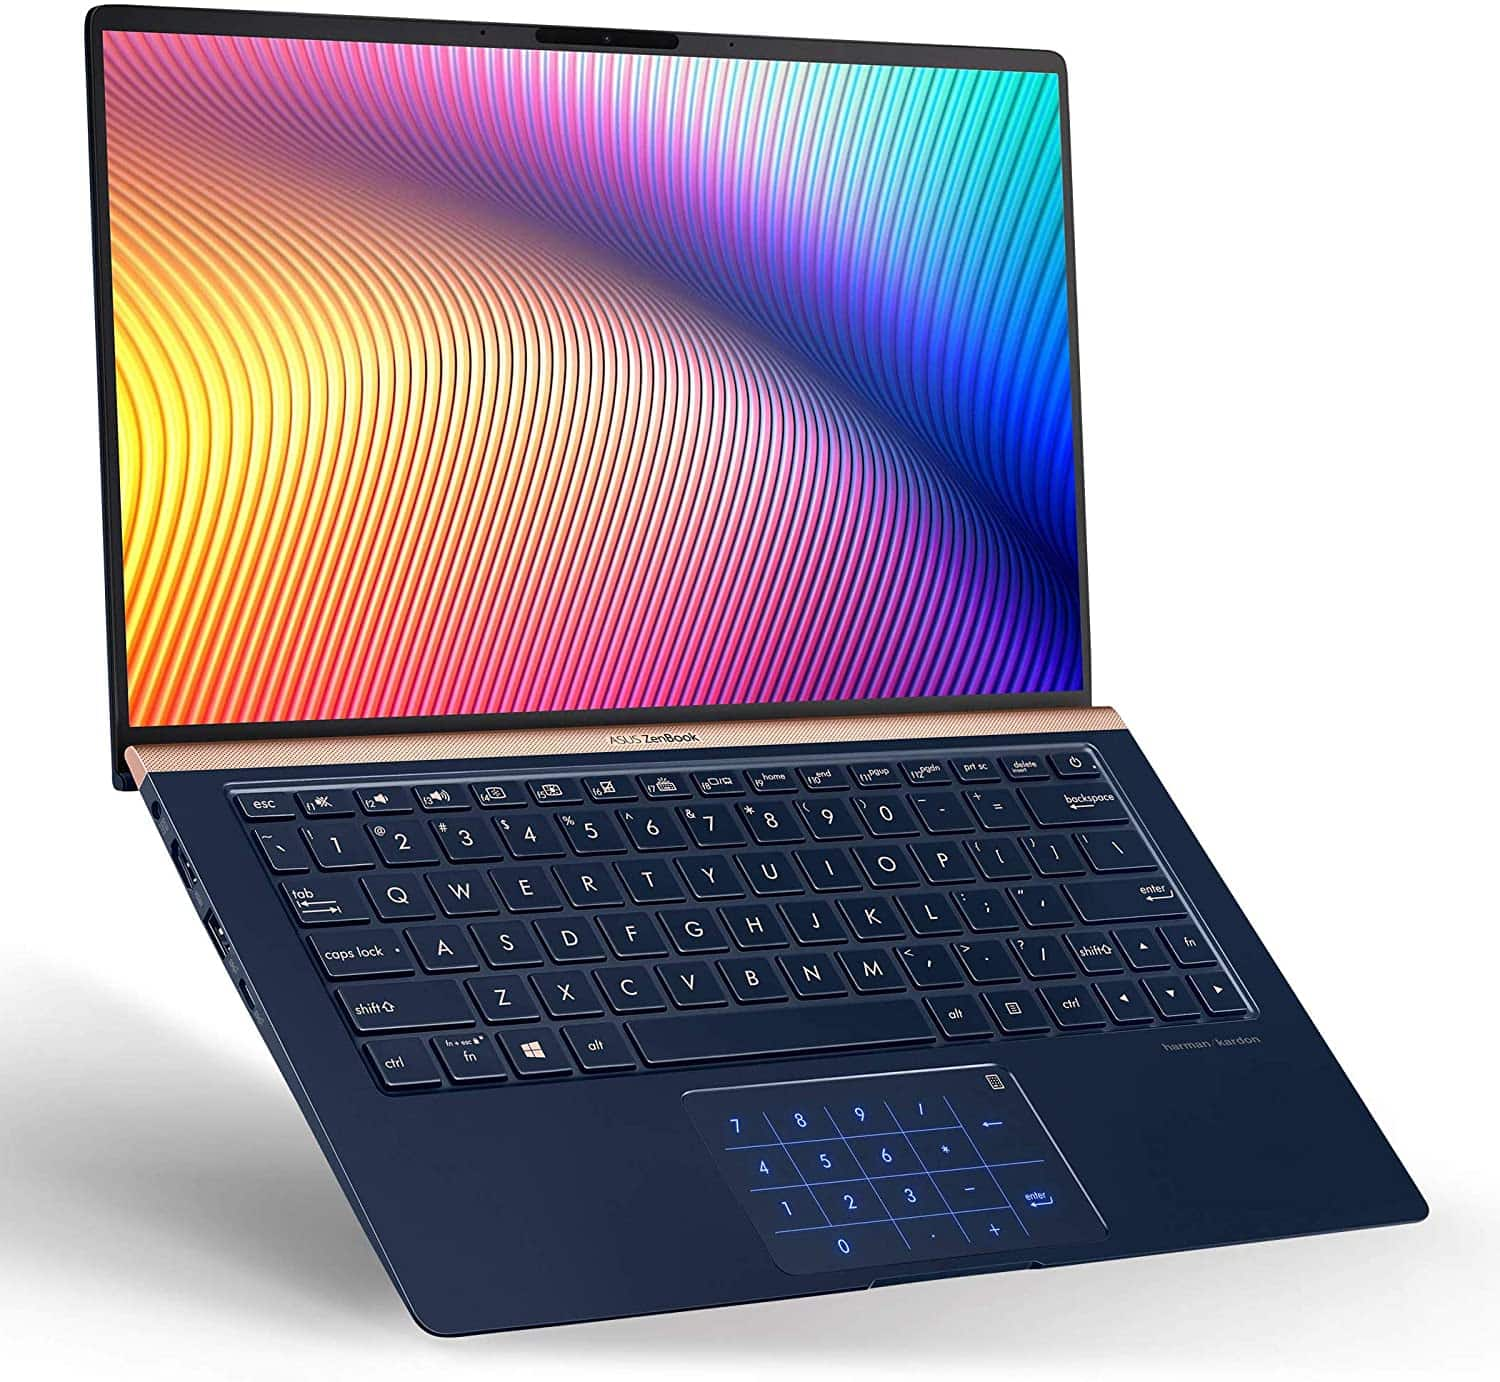 Top 10 Best Asus Laptops for Graphic Design in 2021